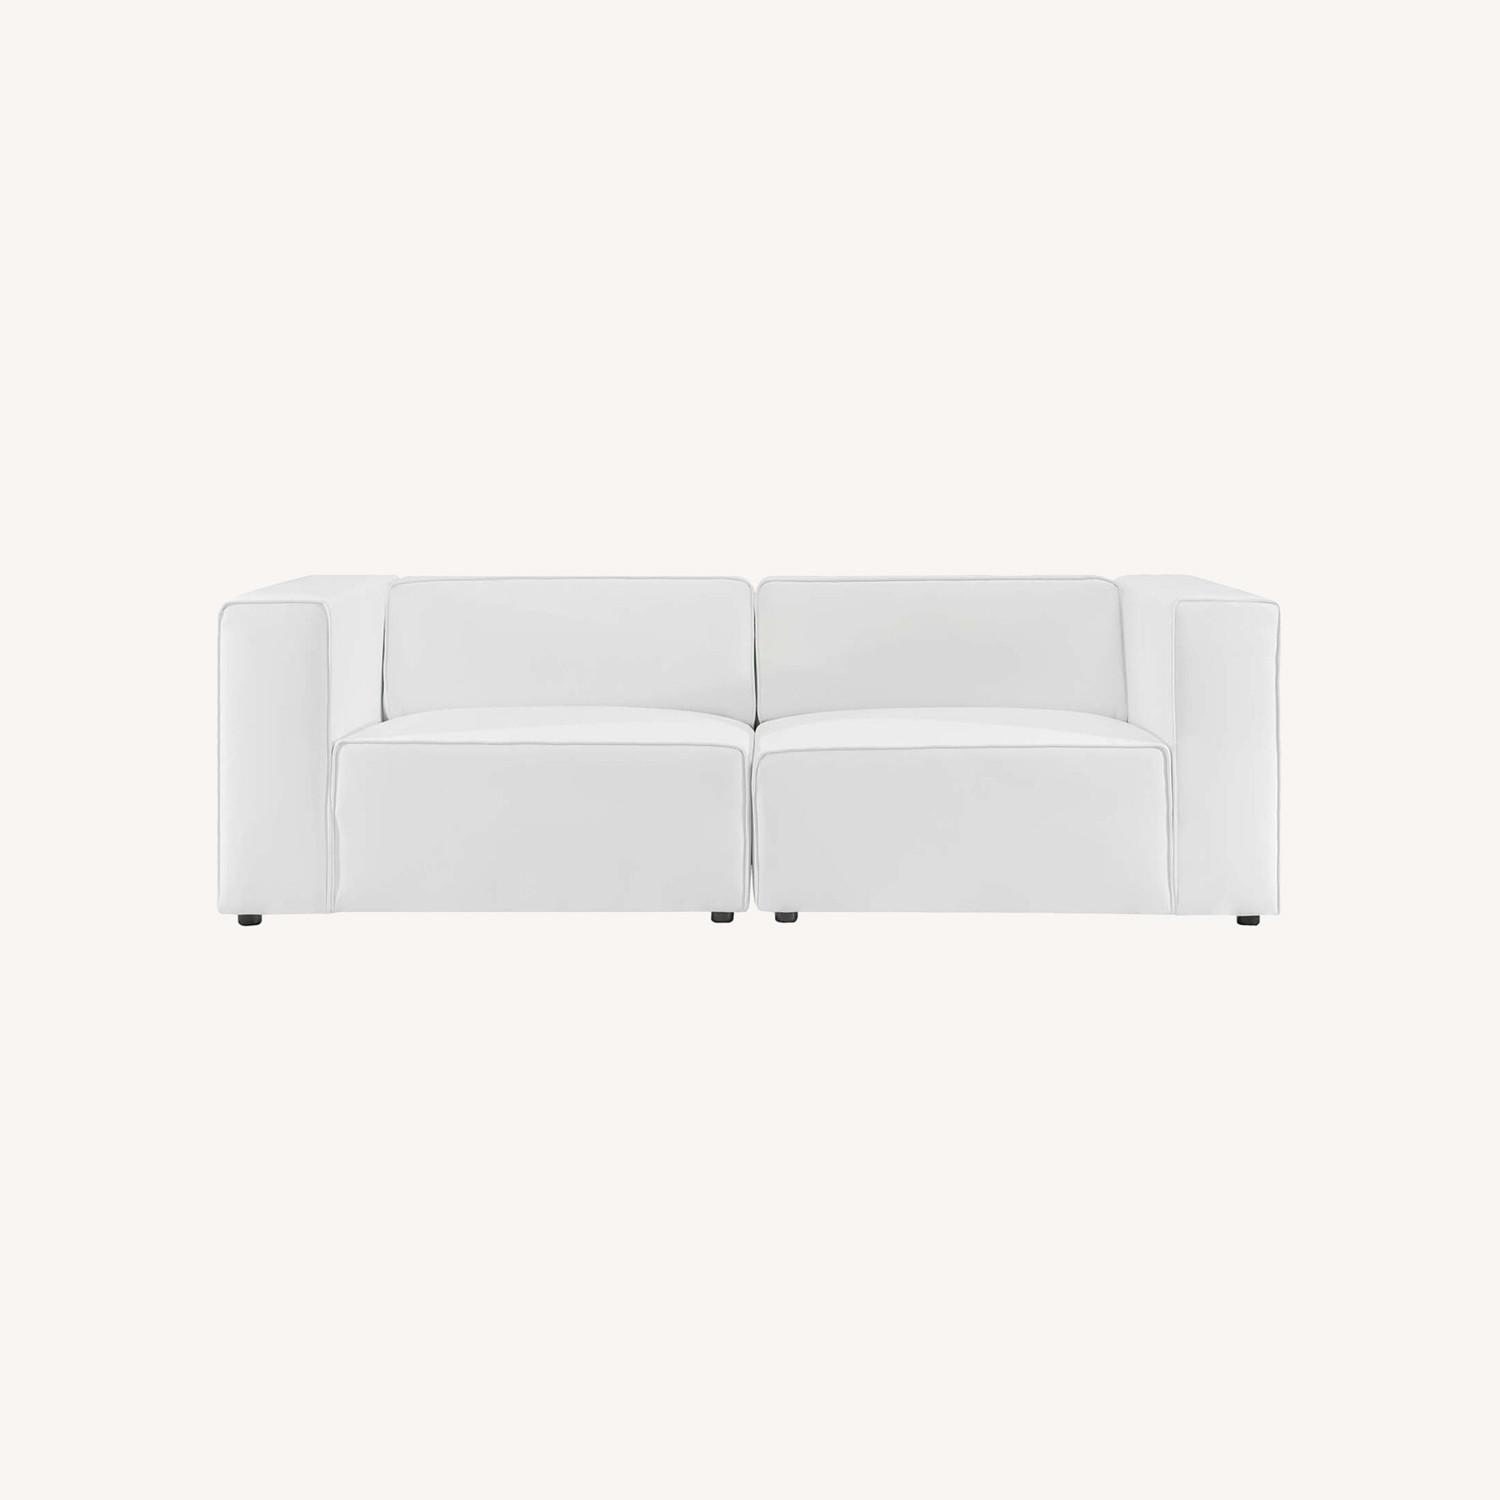 2-Piece Sectional Sofa In White Leather Finish - image-9